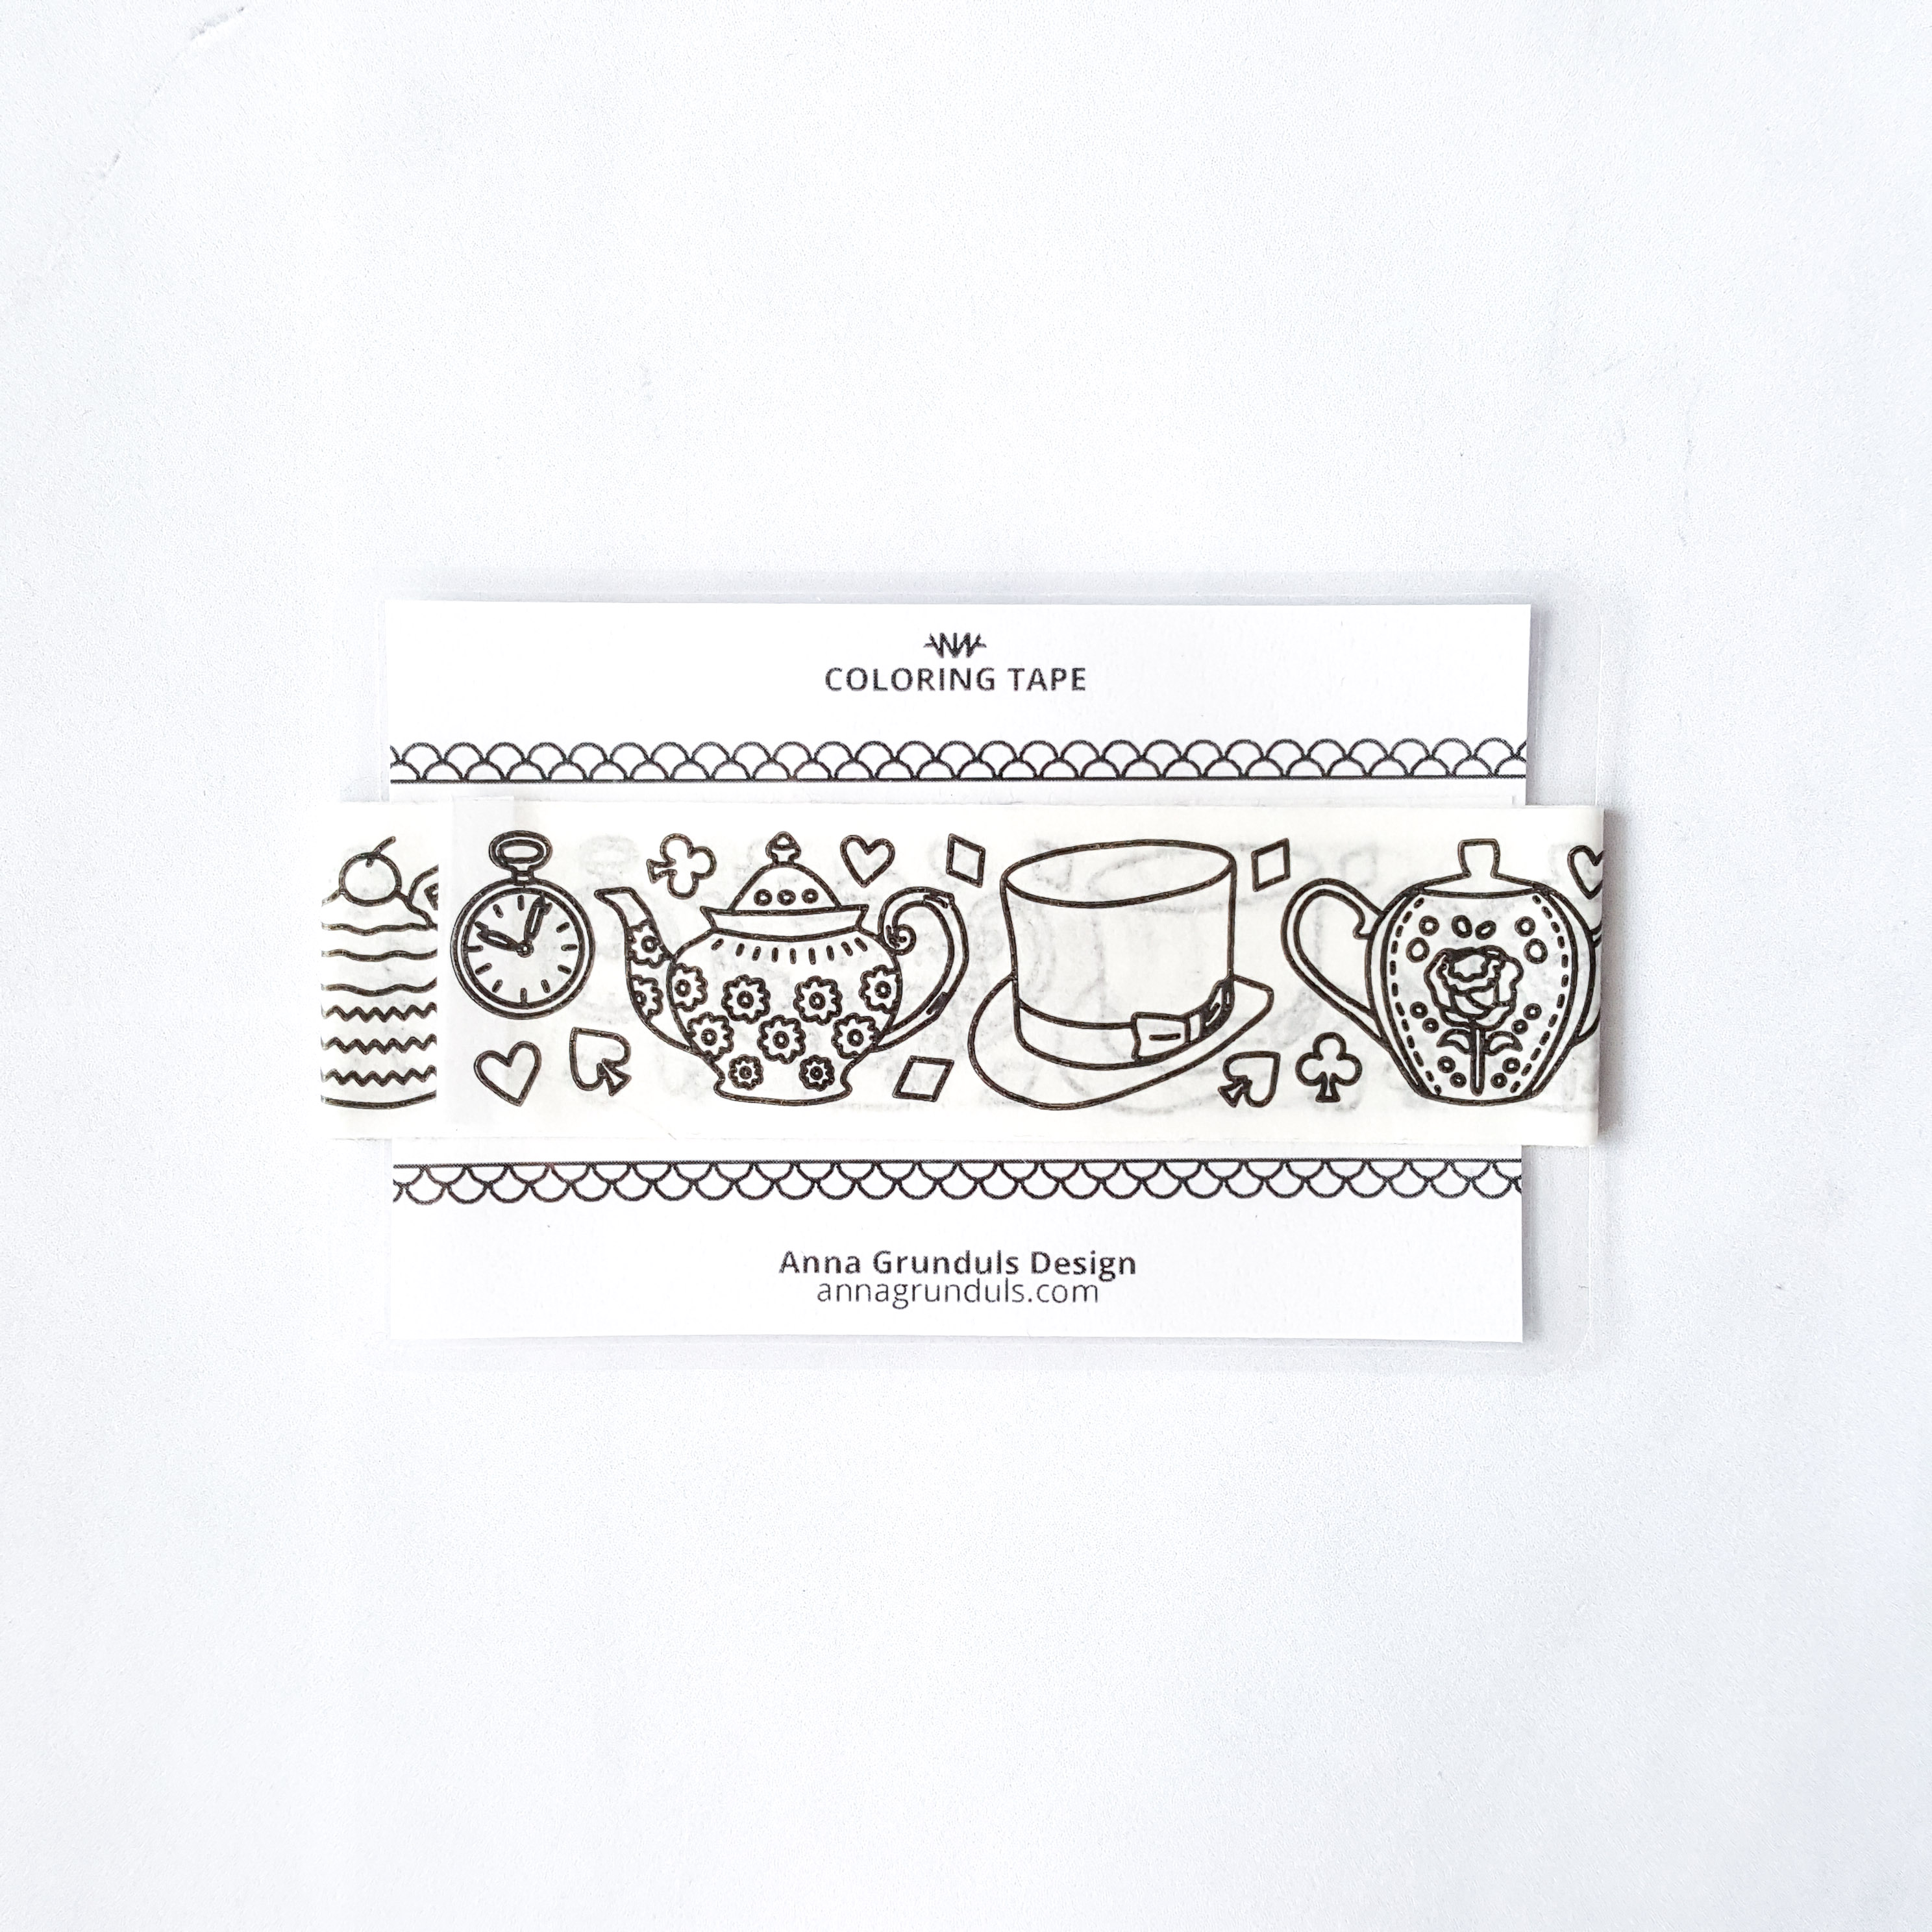 adult coloring tape alice in wonderland teapots rabbits cards adhesive kraft paper washi